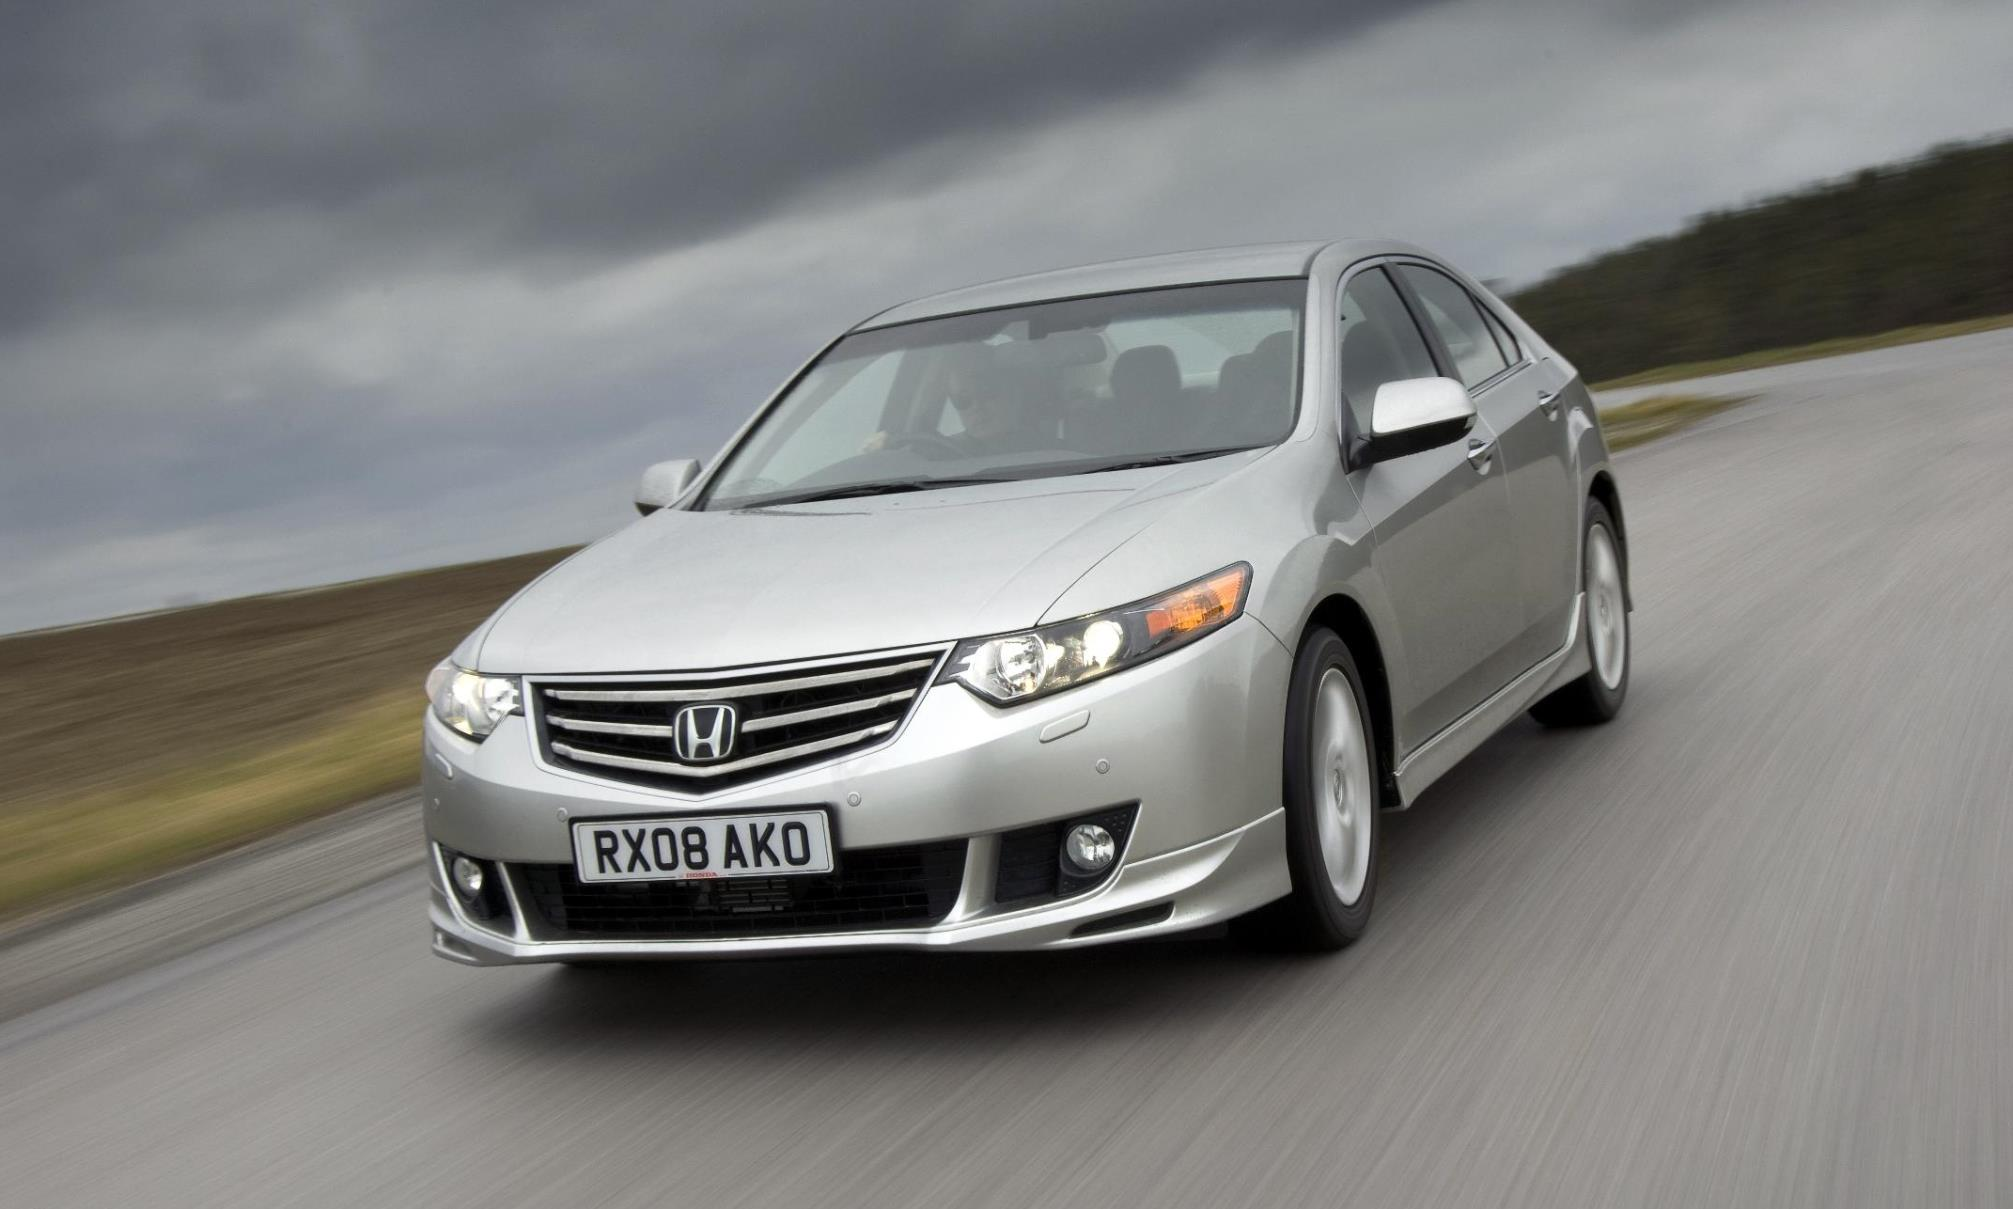 Honda Accord Sedan 2.4 i-VTEC Exclusive AT